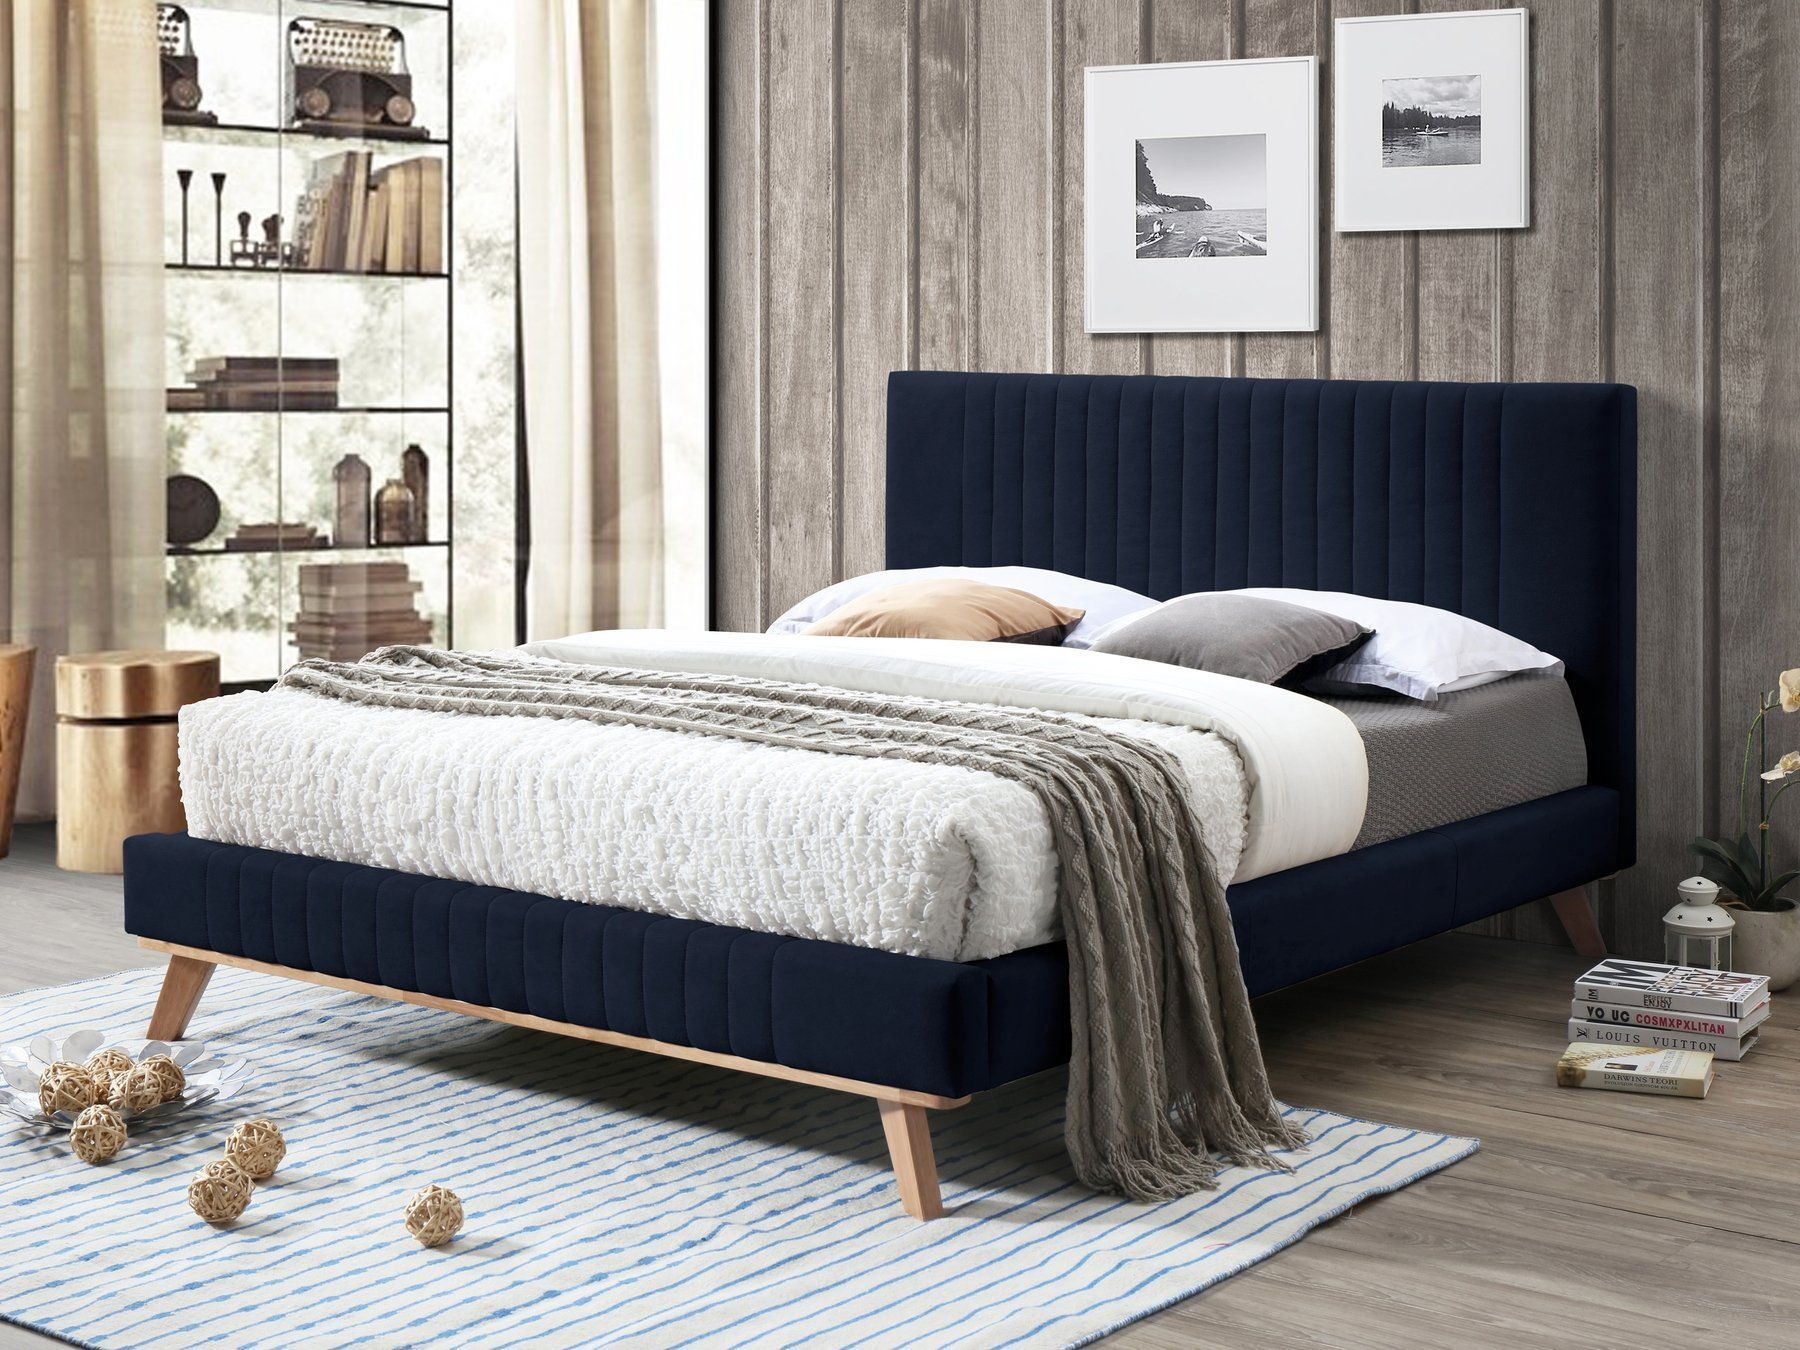 Chenille King Size Bed Dark Blue TALENCE Upholstered